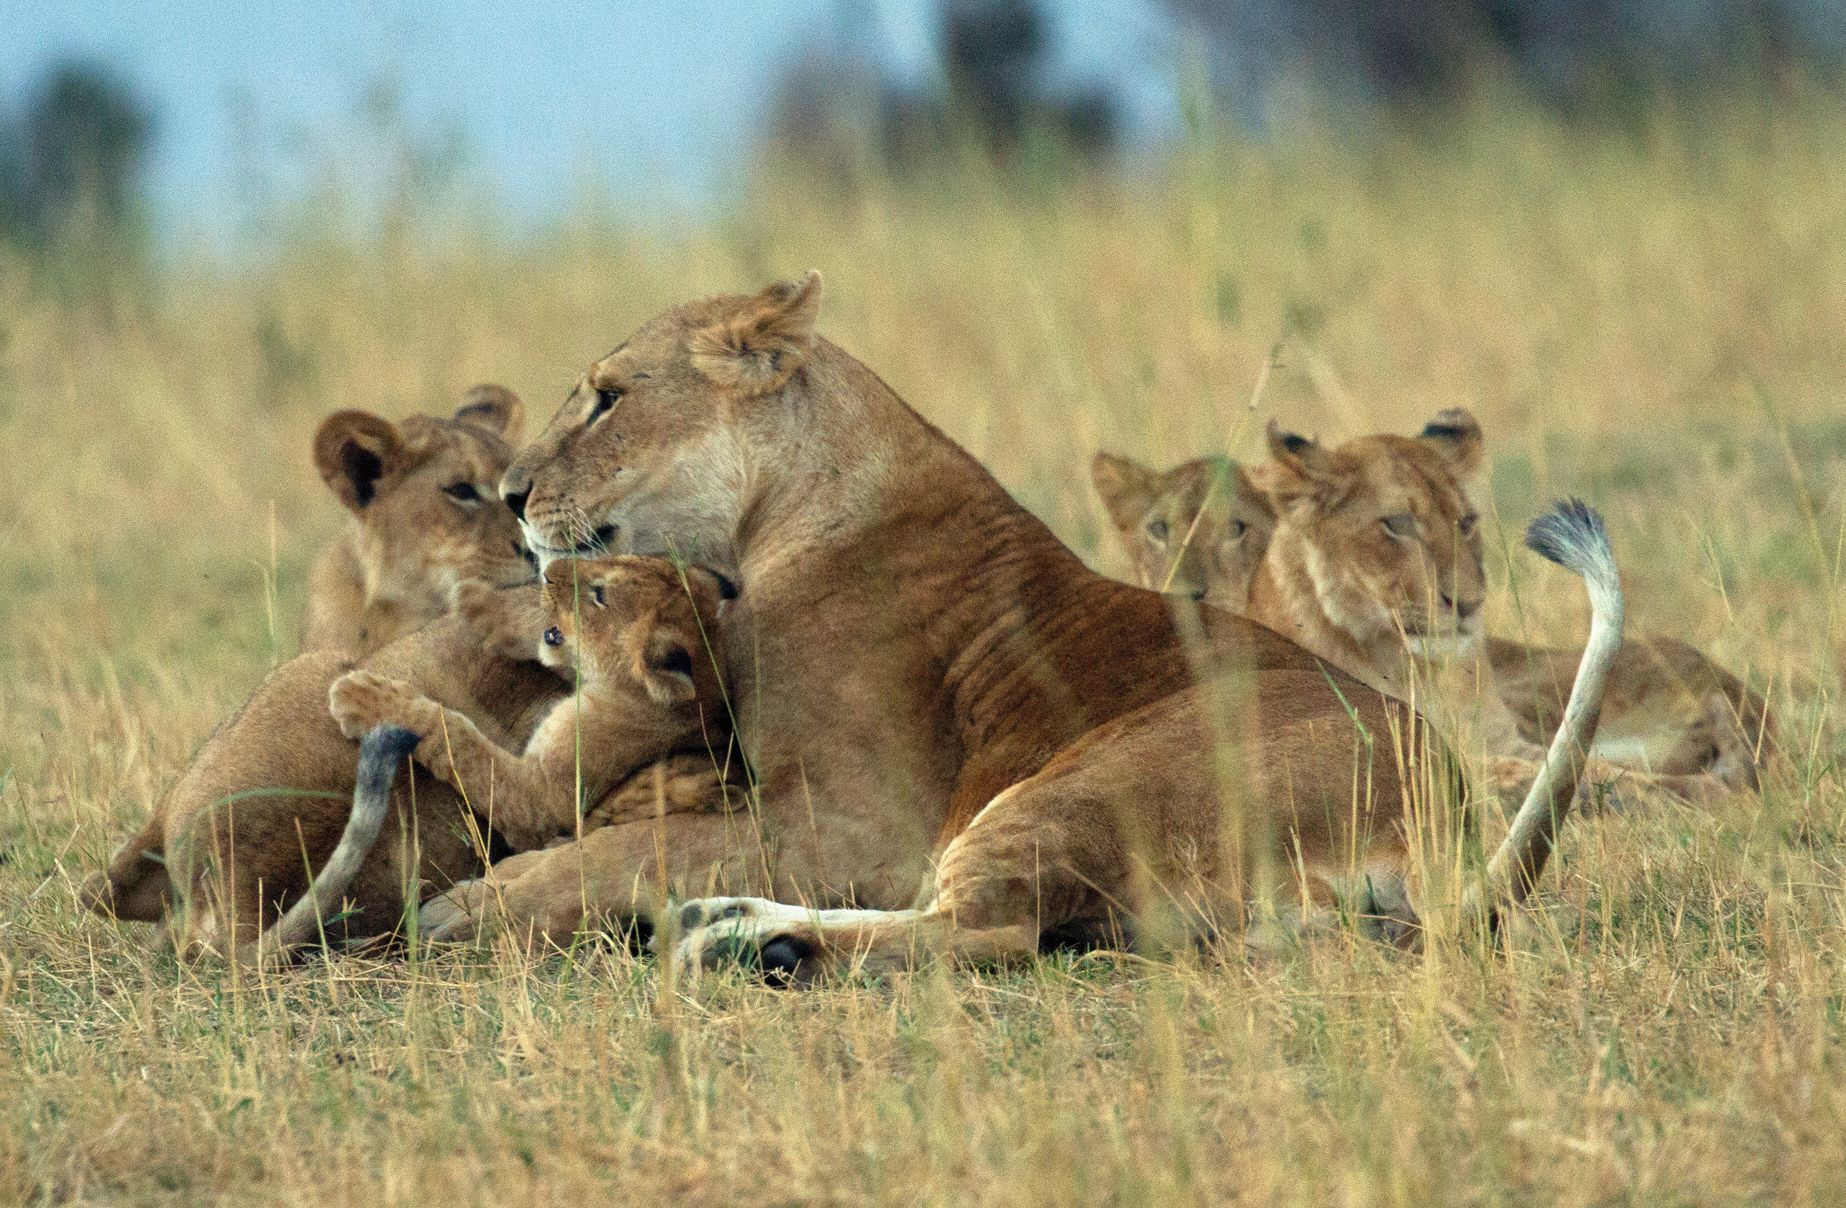 A lioness and cubs in northern Tanzania